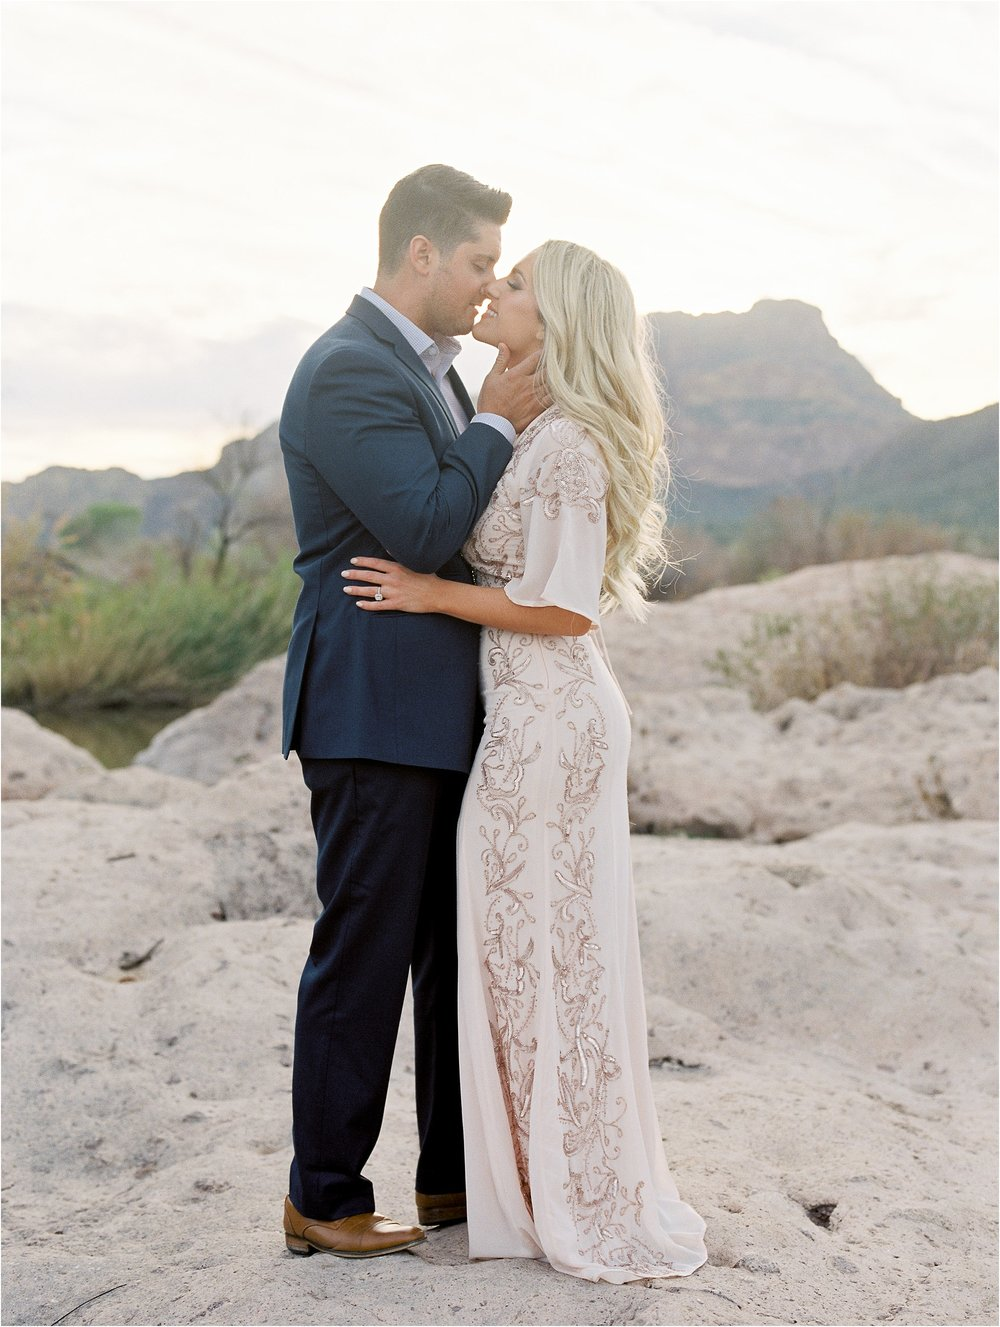 Sarah Jane Photography Film Hybrid Scottsdale Phoenix Arizona Destination Wedding Photographer salt river asos engagement britney tj_0010.jpg